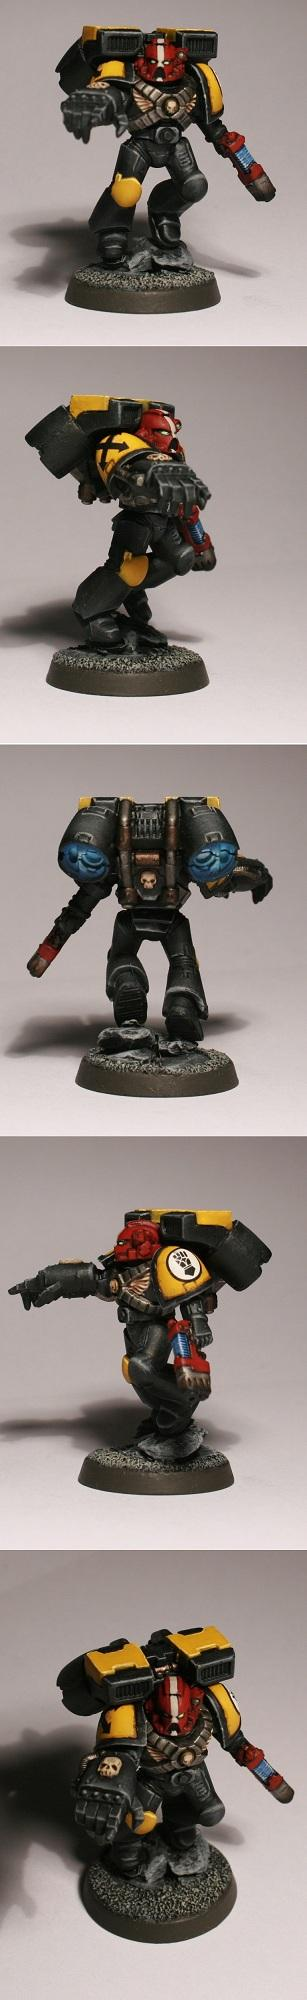 Assault, Assault Marines, Imperial Fists, Sergeant, Space Marines